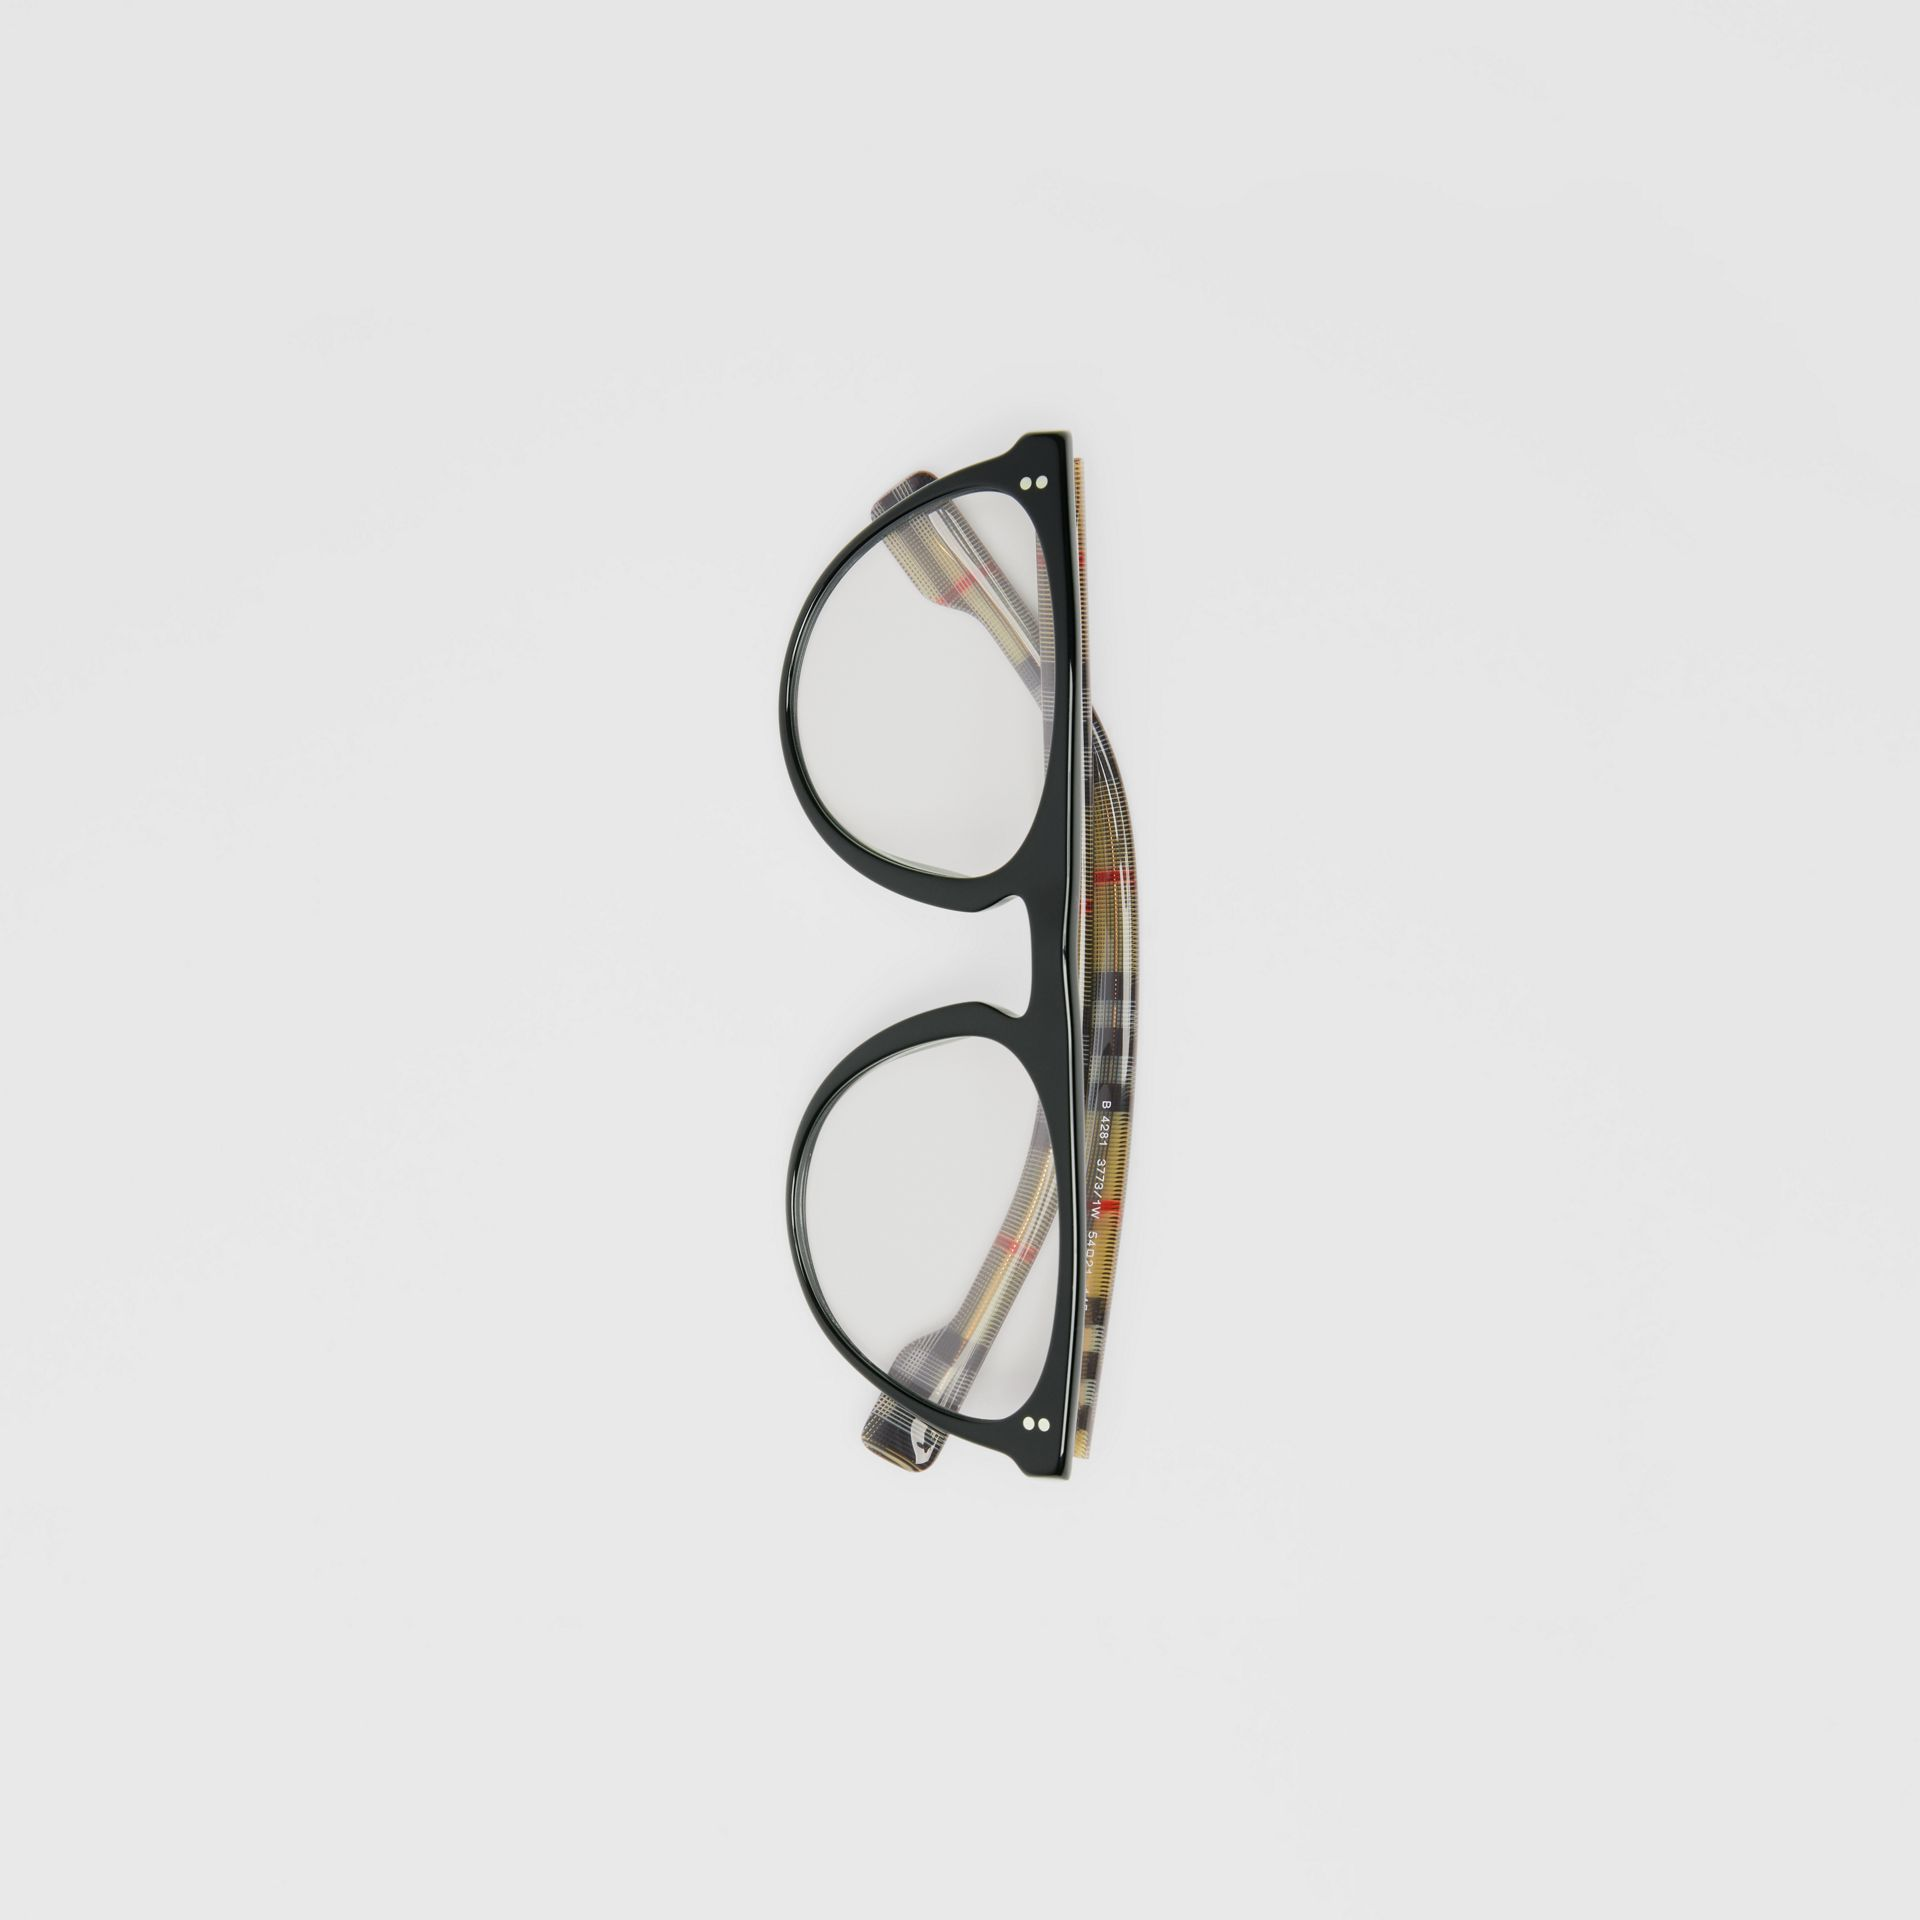 Keyhole D-shaped Optical Frames in Black - Men | Burberry - gallery image 3